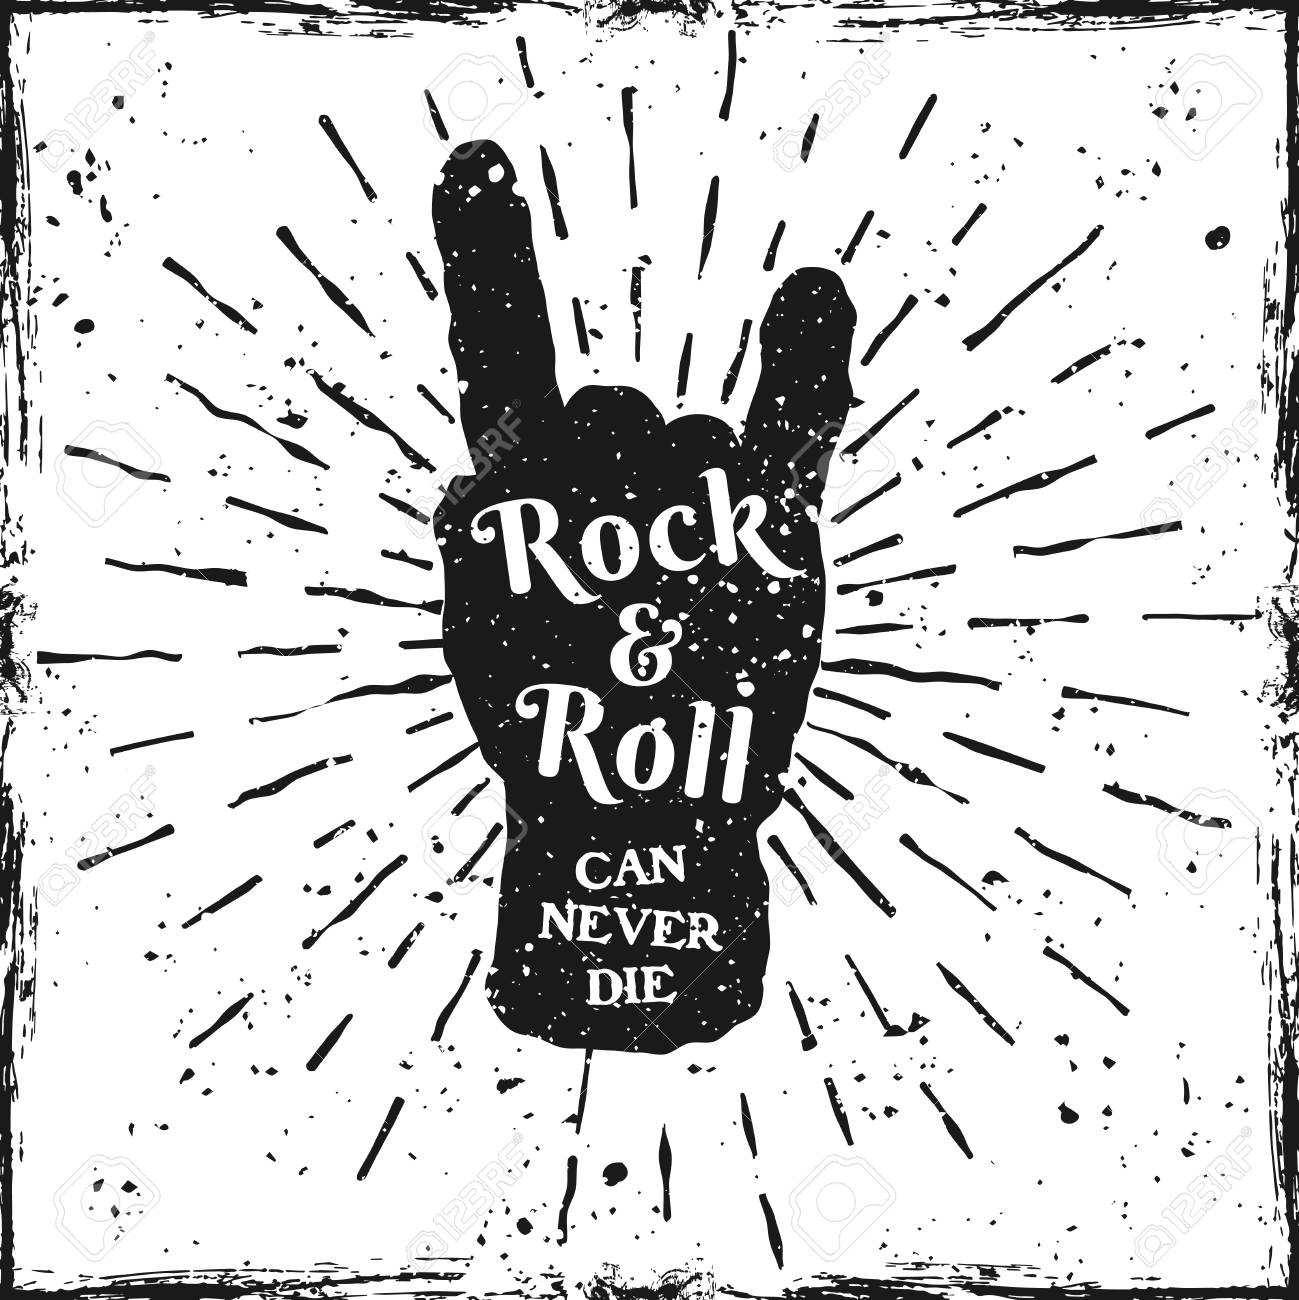 Rock Hand Gesture Of Horns Music Print Or Label With Quote Rock